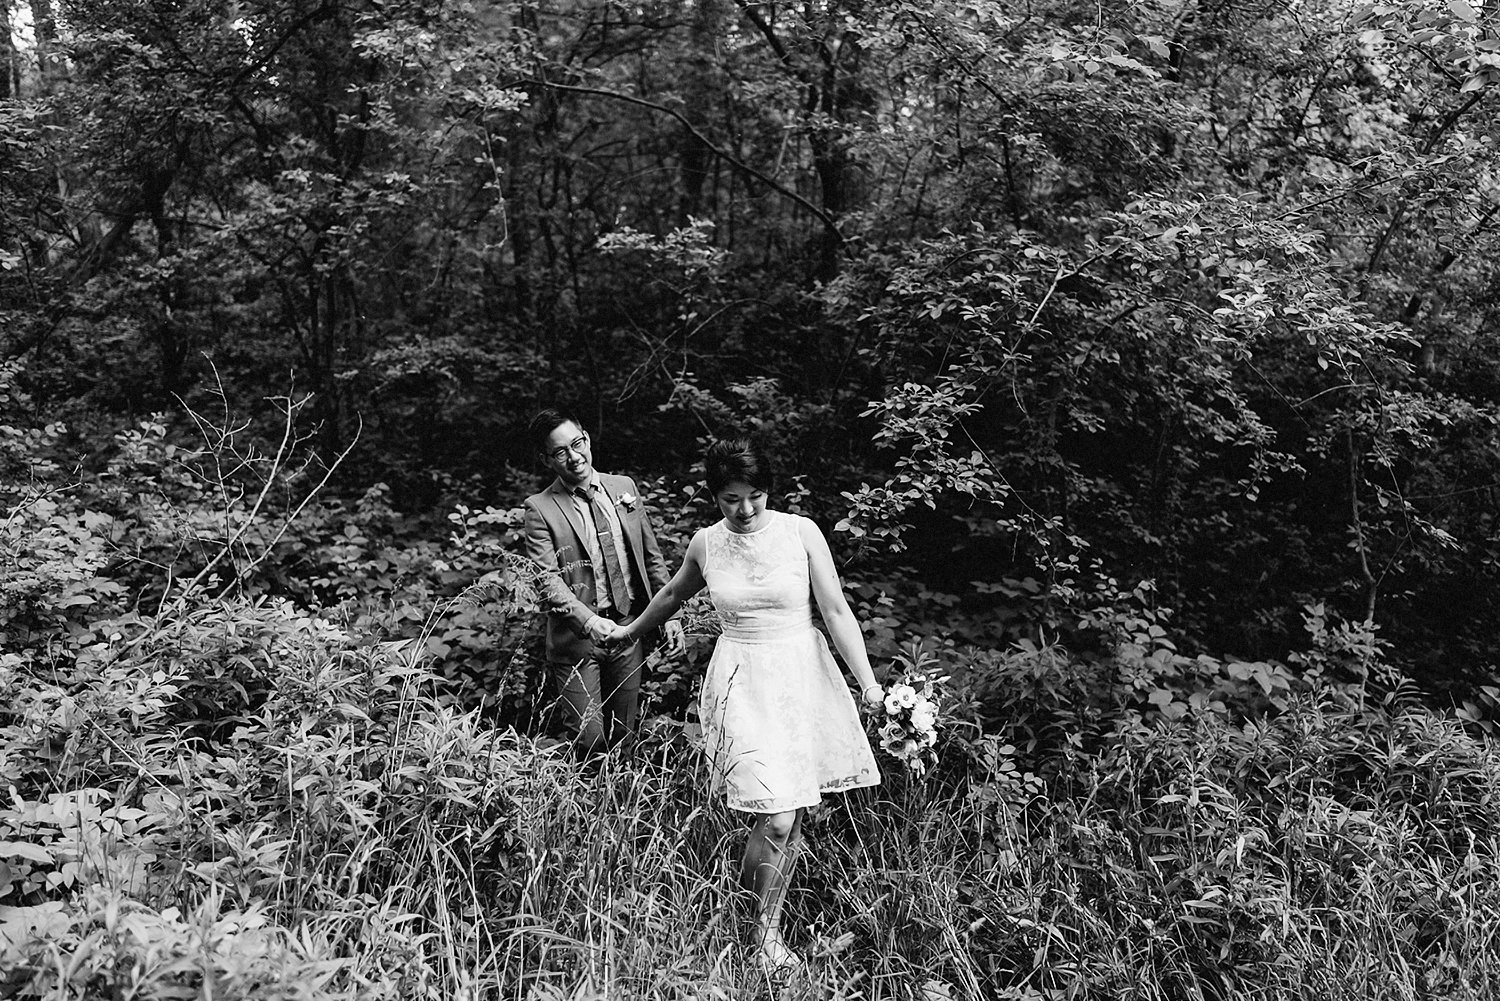 Fine-Art-Documentary-Wedding-Photographer-Toronto-Ontario-Canada_-High-Park-The-Lodge-Outdoor-Forest-Wedding_-Candid-moment-between-bride-and-groom--Lost-in-Forest-Trees-Epic-Candid-Moment-walking-among-trees.jpg